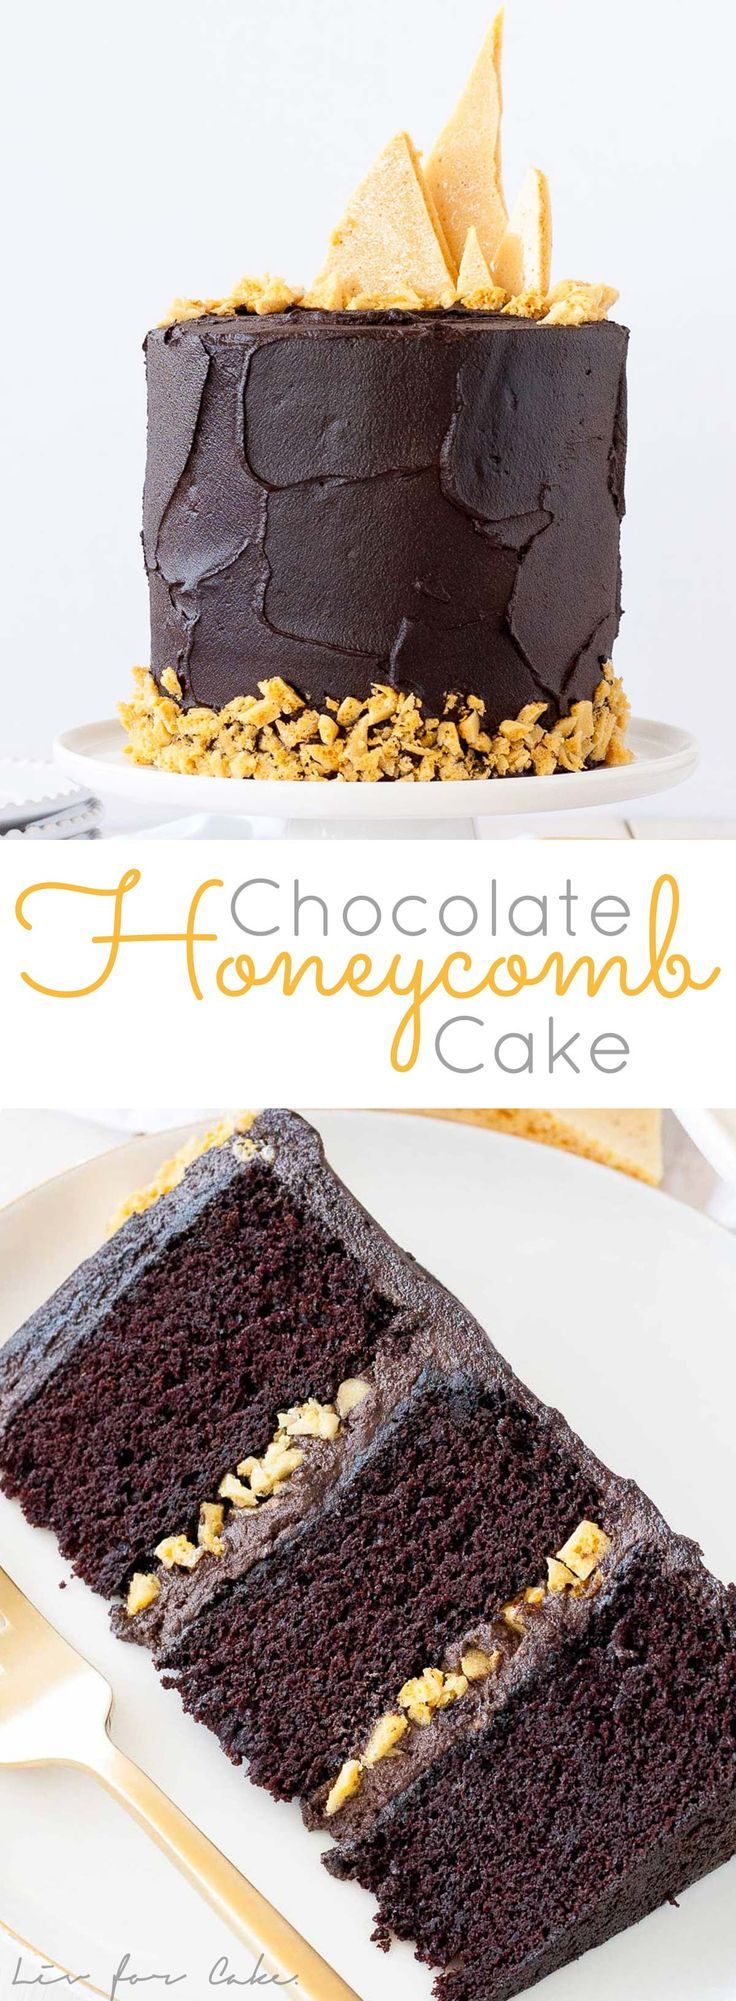 The ultimate dark chocolate cake, layered with a rich fudge frosting and homemade honeycomb. | http://livforcake.com